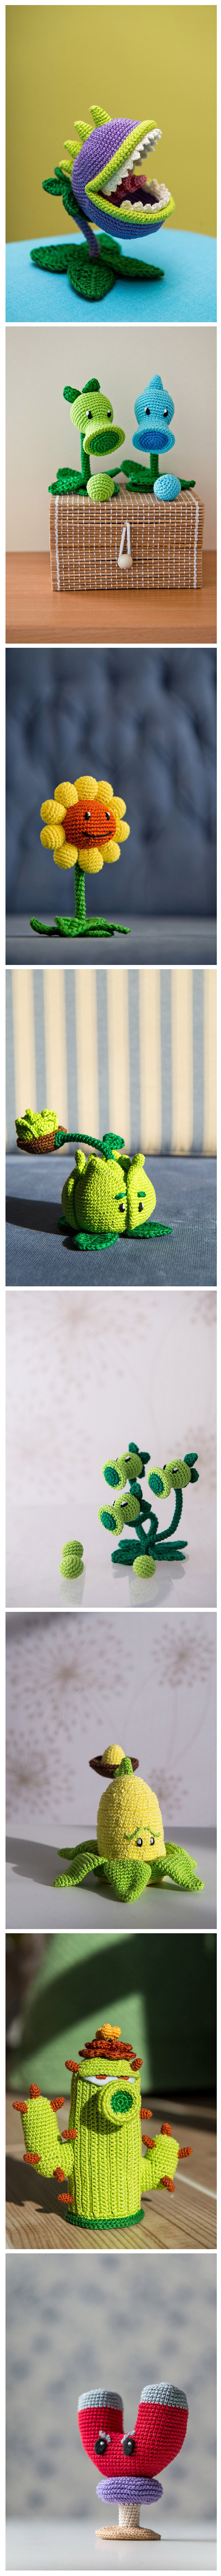 Amigurumis de Plants vs Zombies